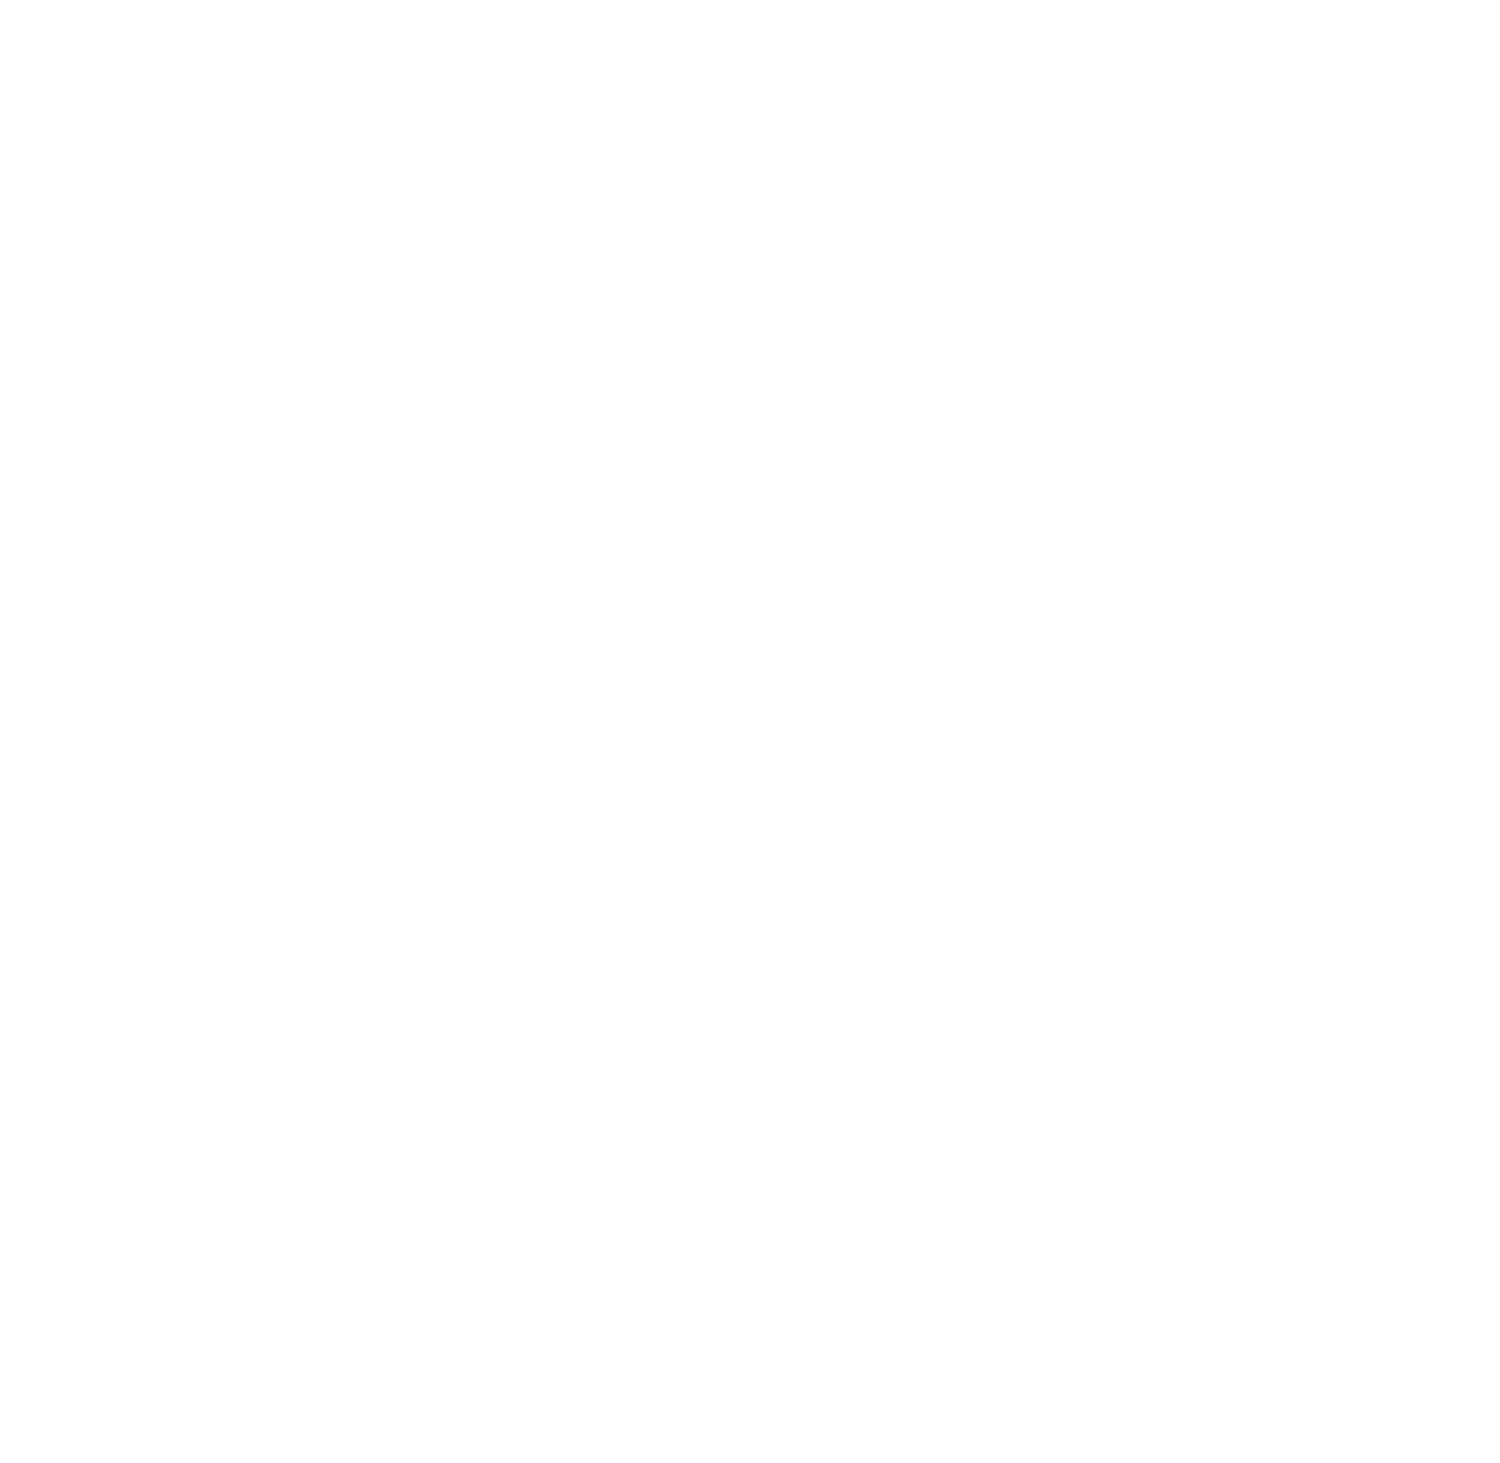 Ringwood Training – RT Ringwood Training RT RTTF  Traineeships, trade training, VCE VET, vehicle servicing technical STEM pathways jobs qualifications courses VET in Schools SBAT's VACC -